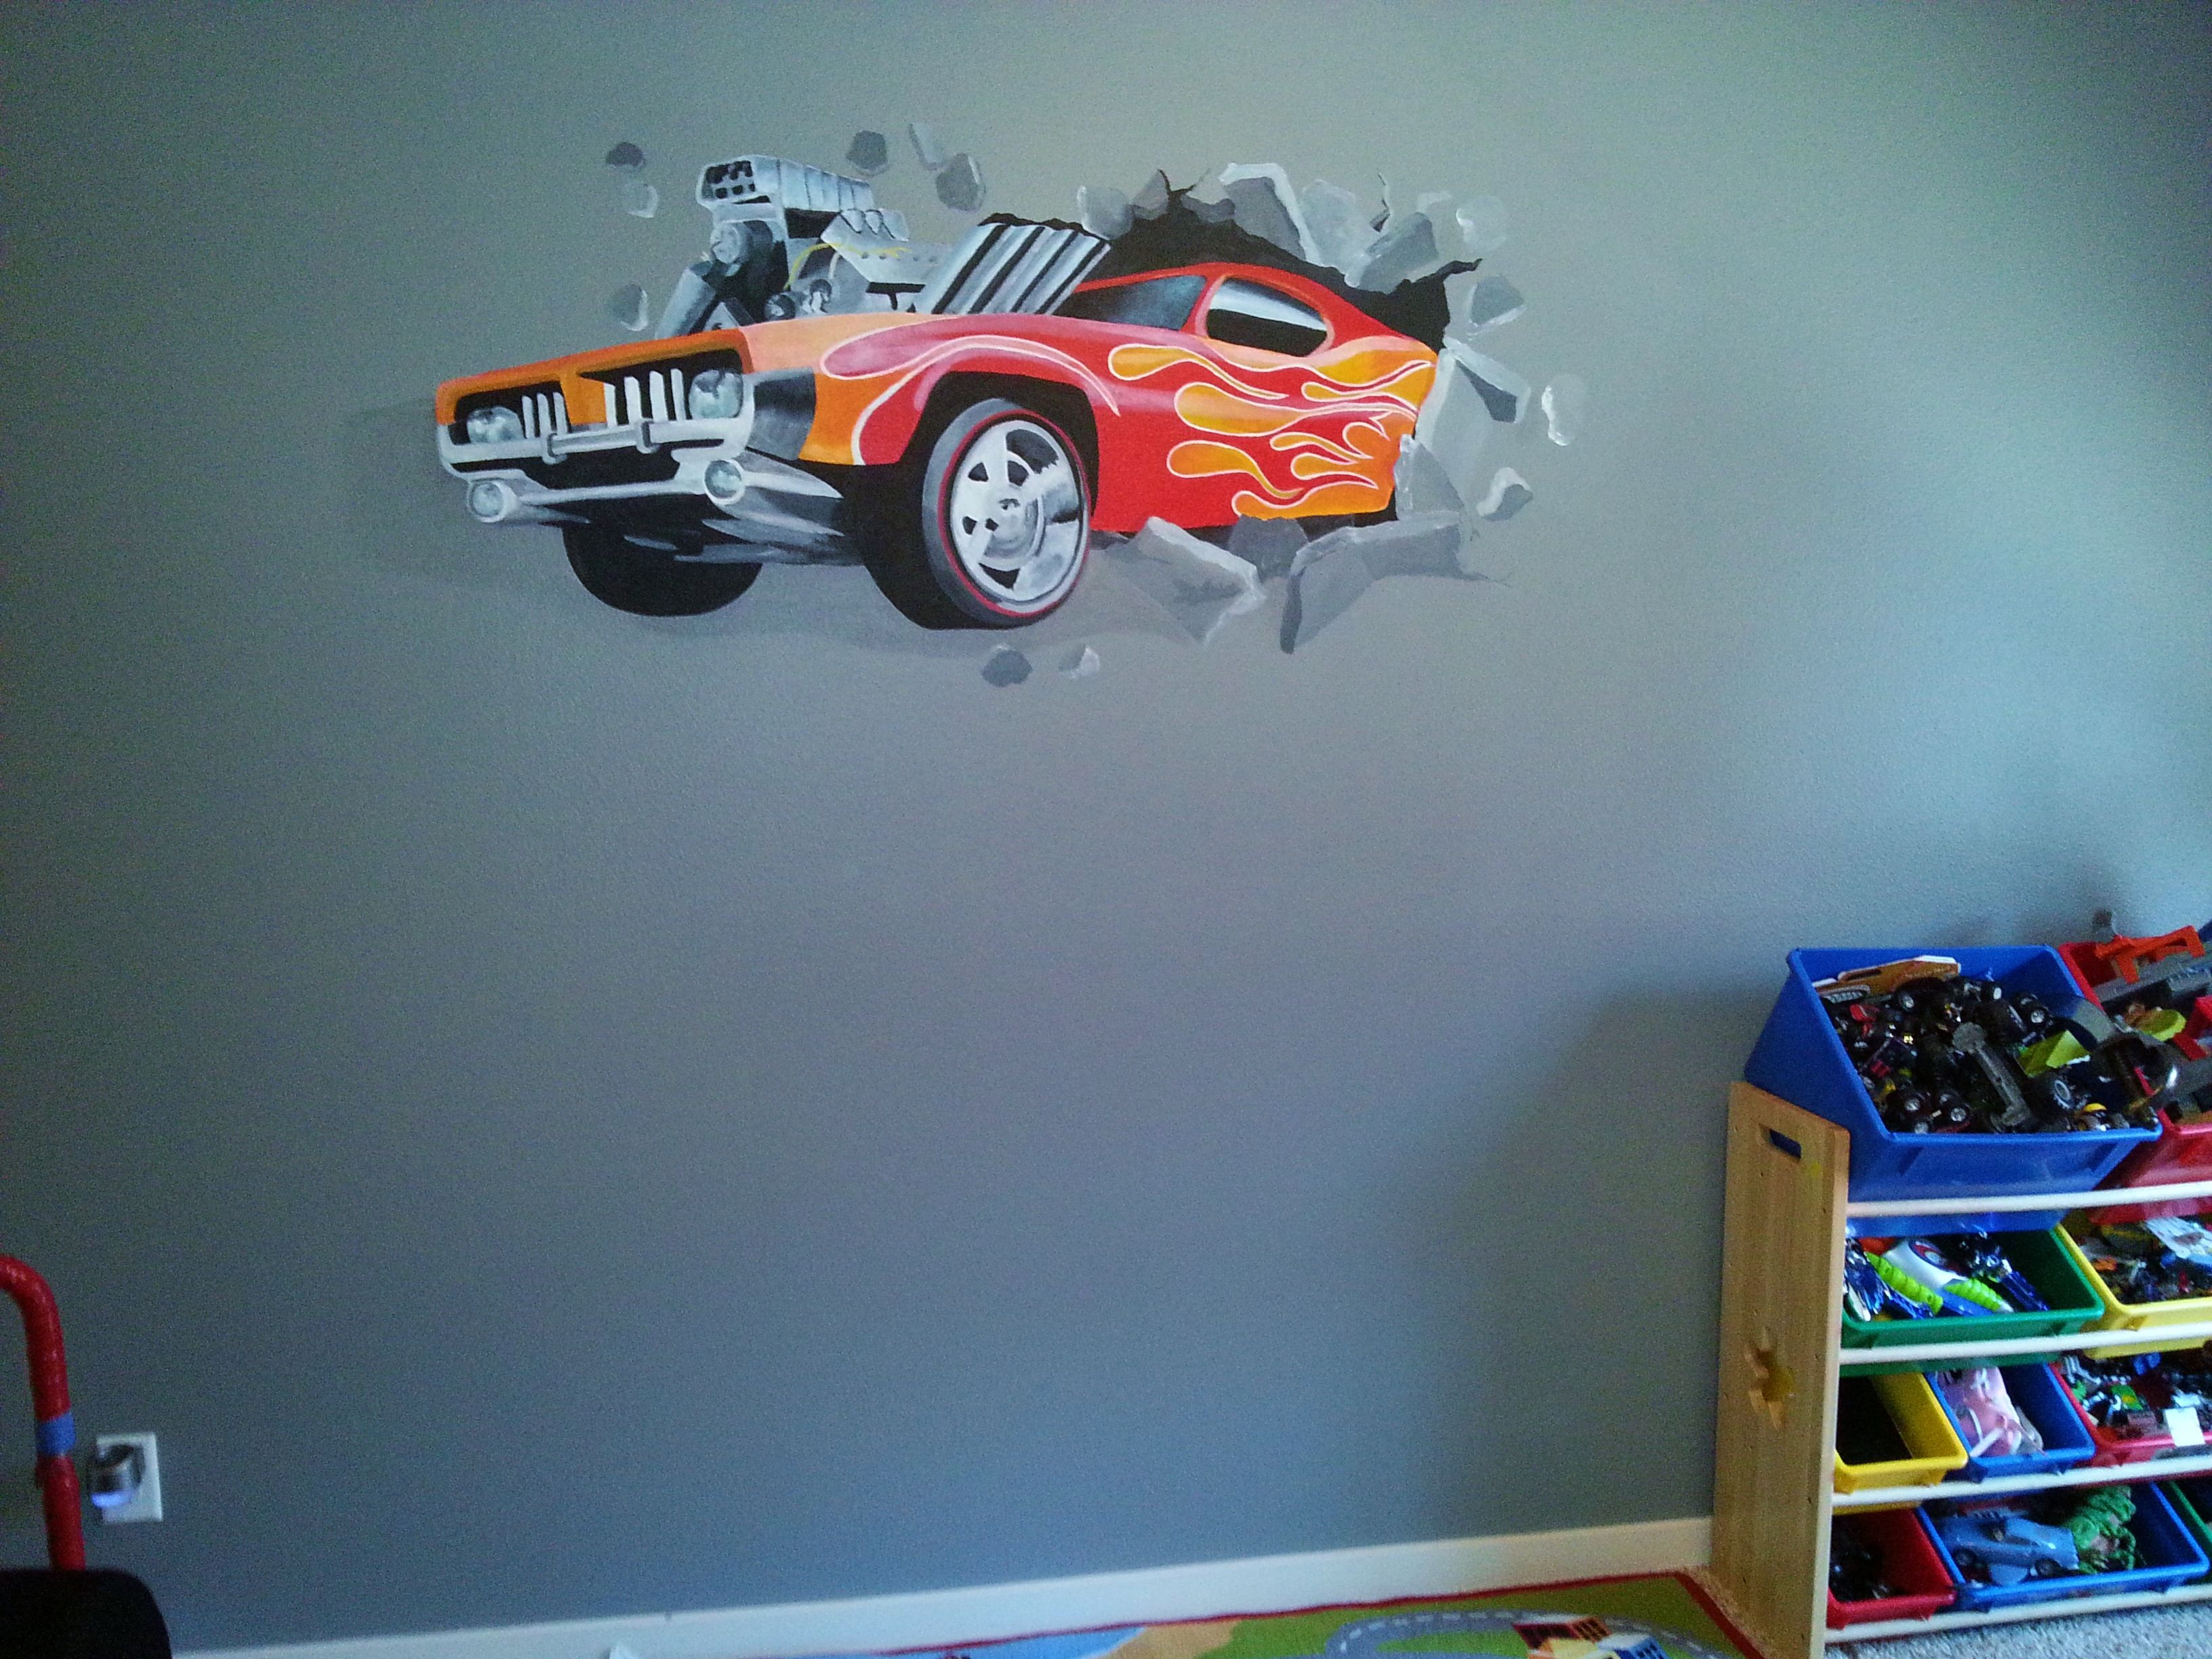 Car crashing through the wall wall tapestry for Circuit hot wheels mural